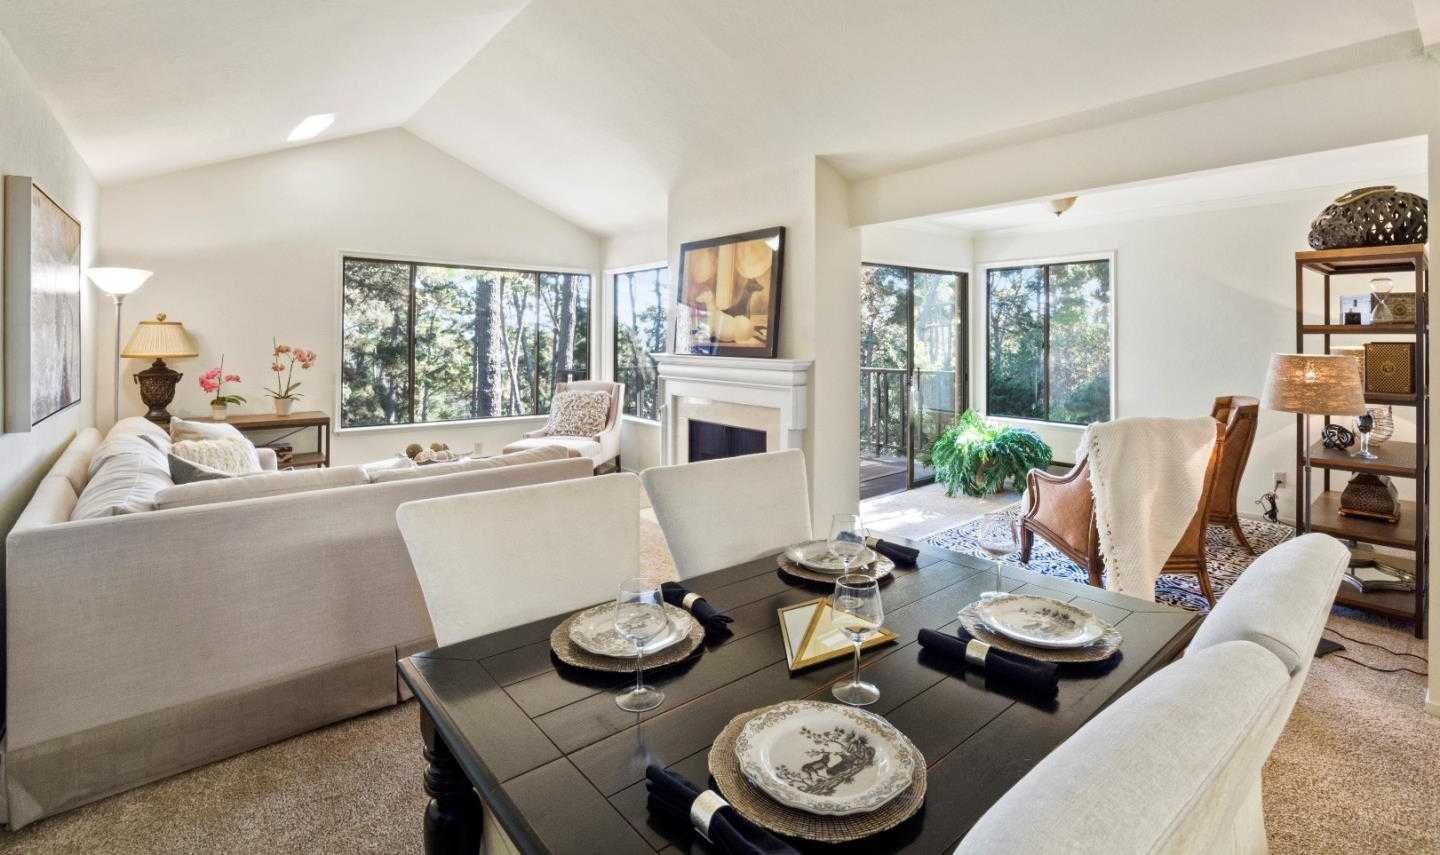 $645,000 - 2Br/2Ba -  for Sale in Pebble Beach